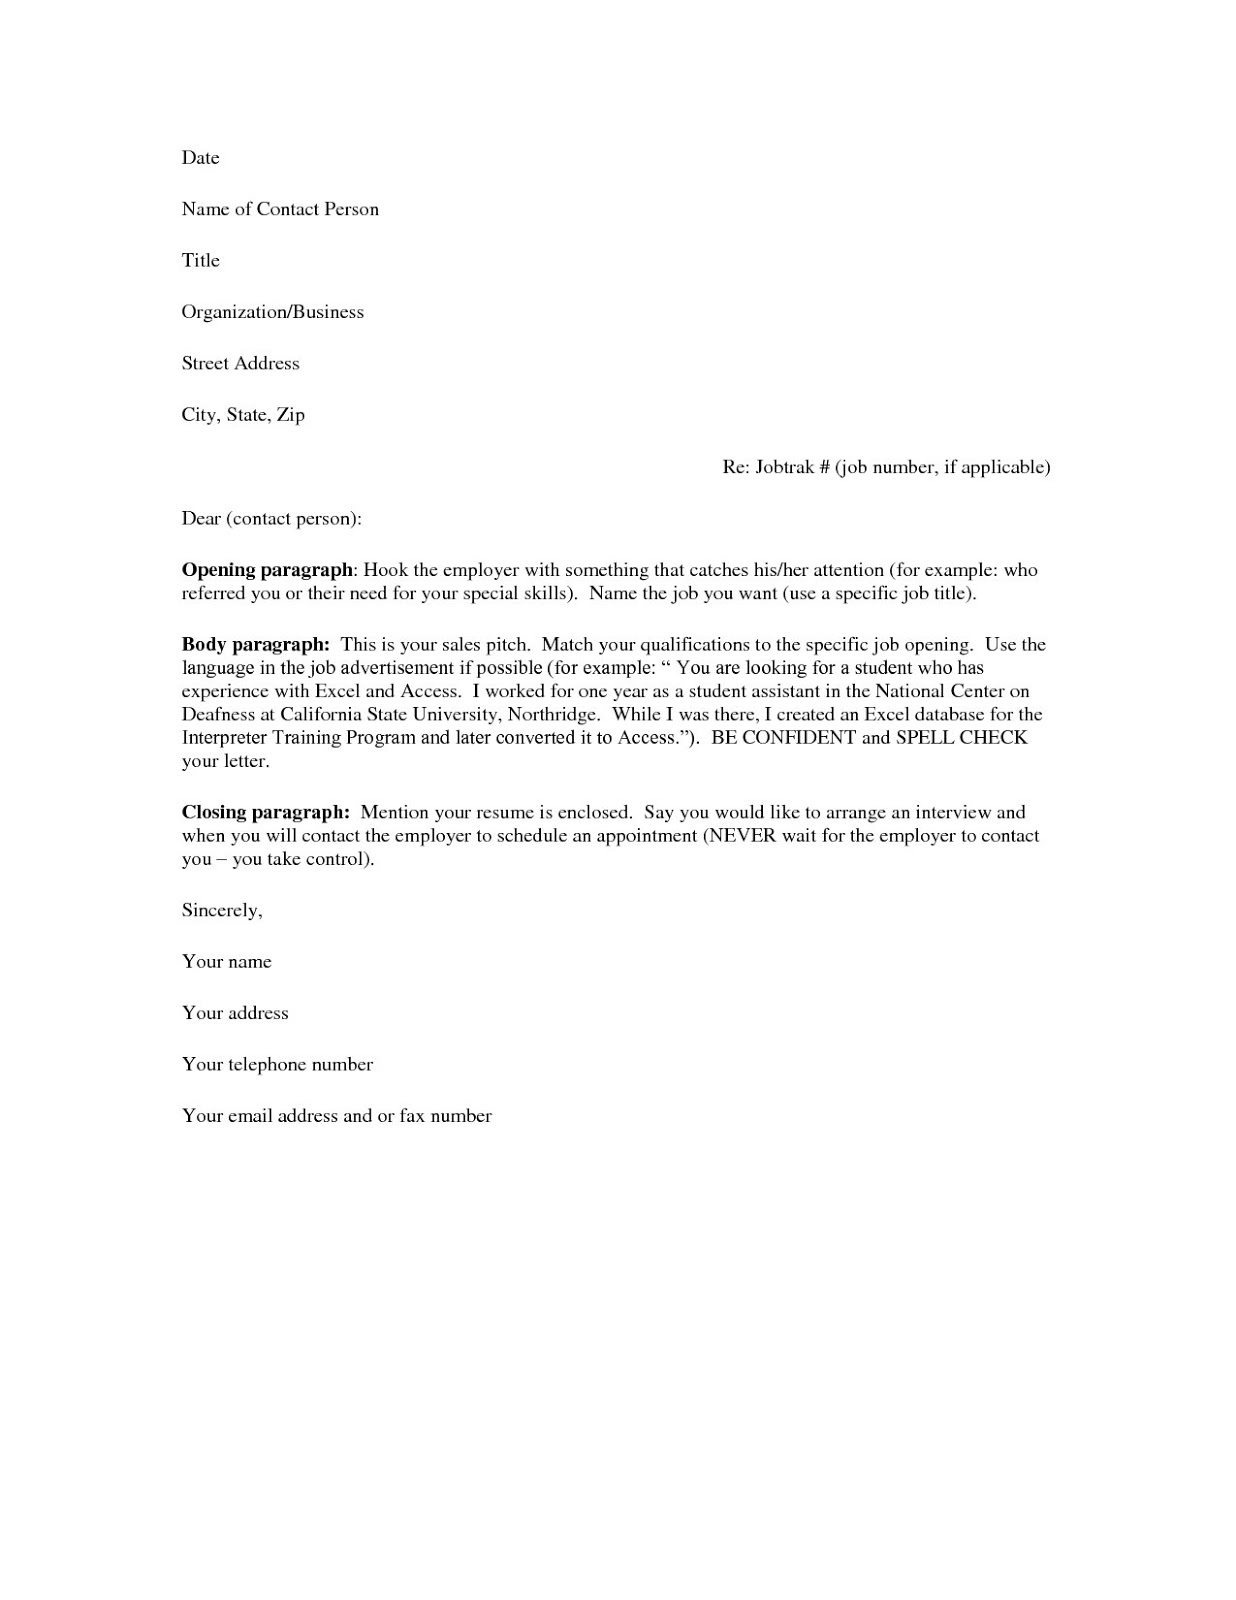 Cover letter for resumes examples